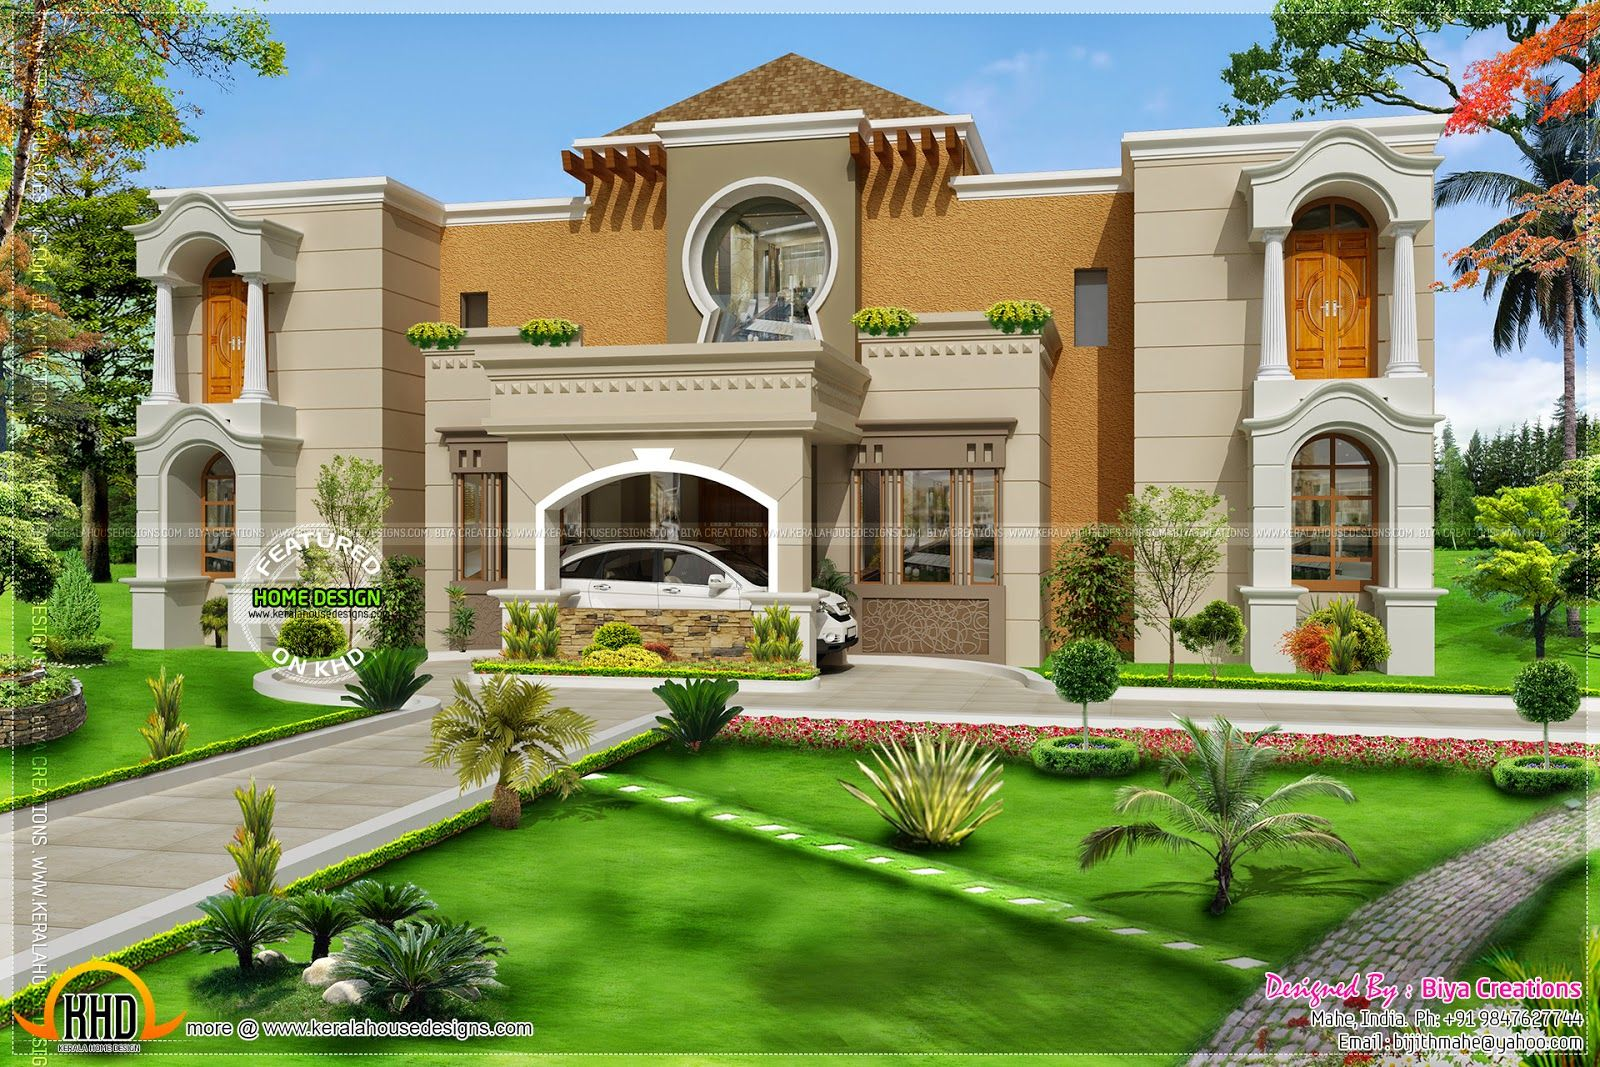 Arabian Villa Rendering - Google Islamic